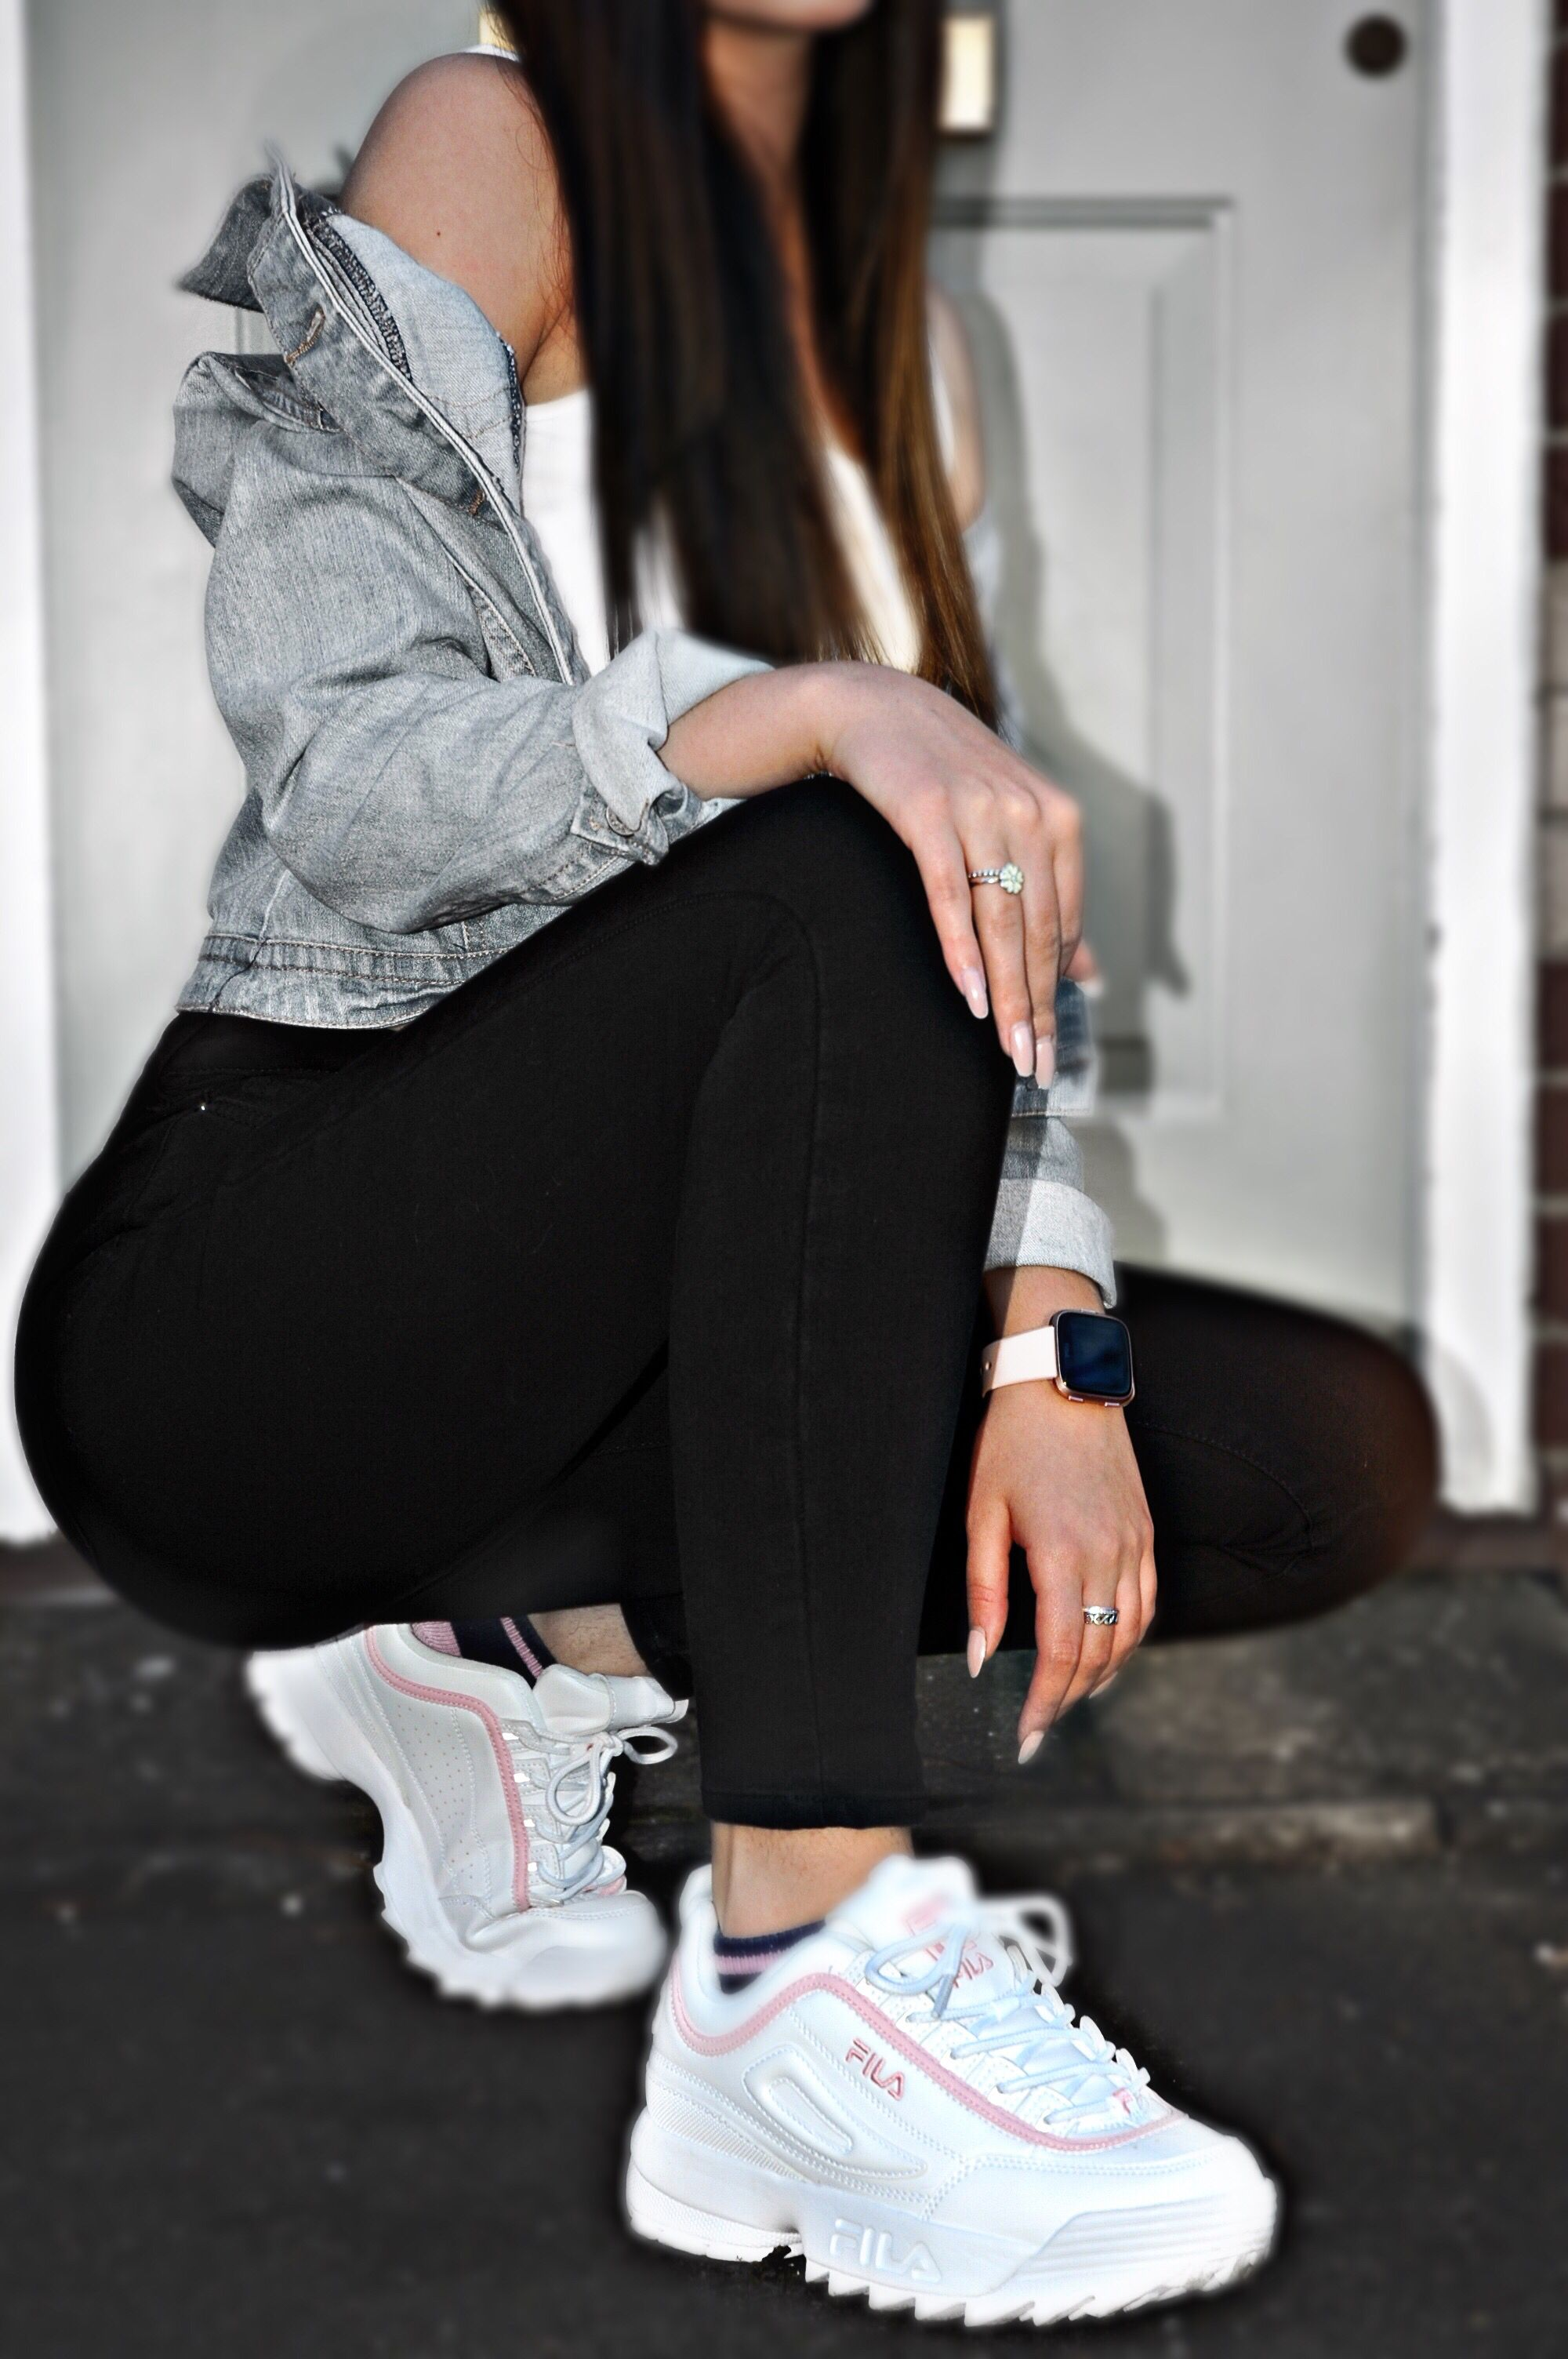 fila shoes with jeans